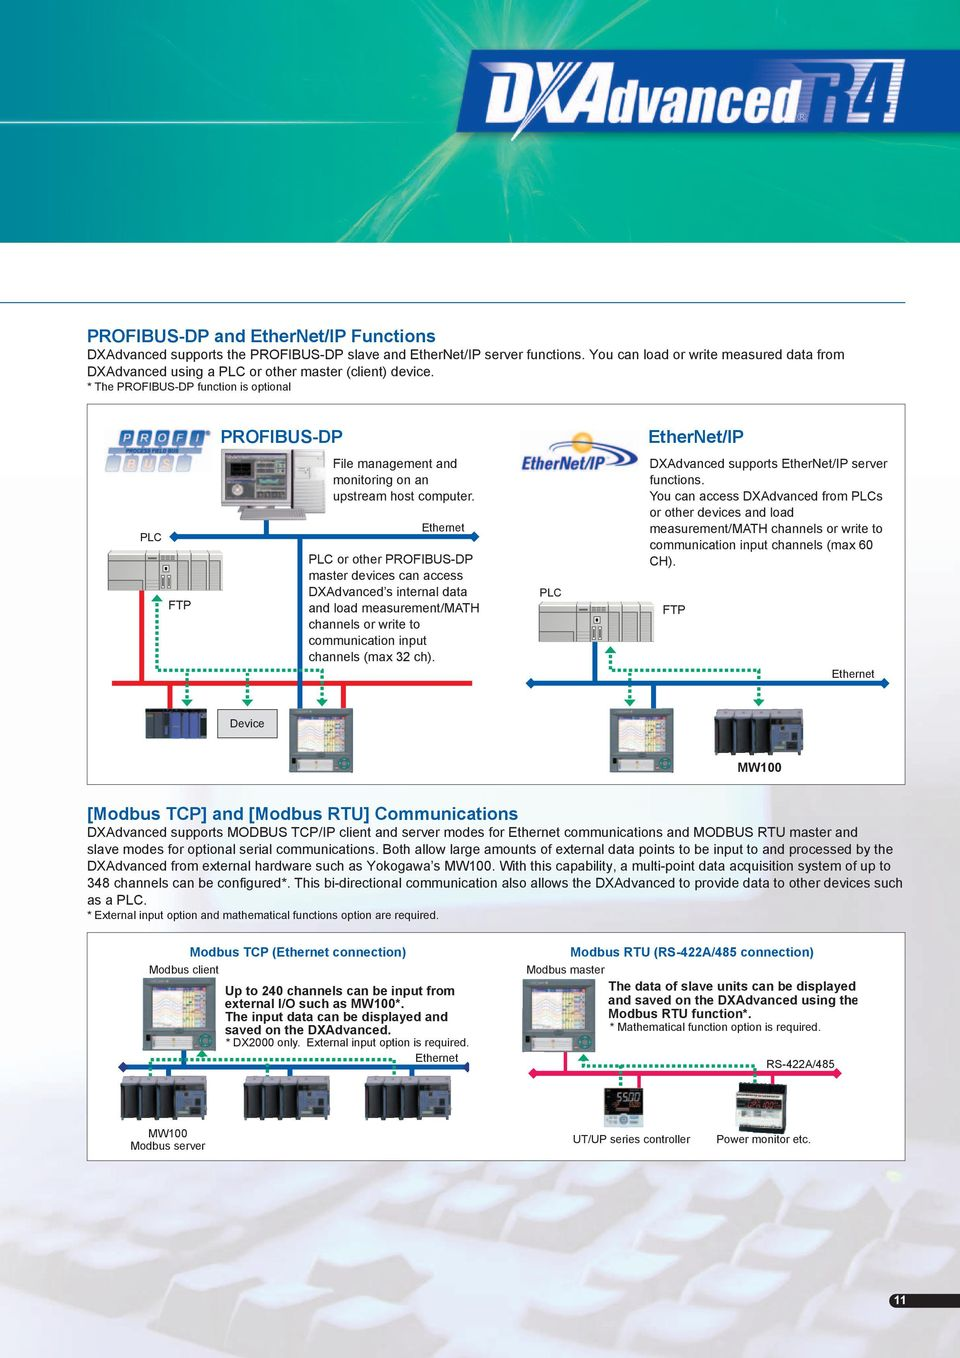 * The PROFIBUS-DP function is optional PROFIBUS-DP EtherNet/IP PLC FTP File management and monitoring on an upstream host computer.